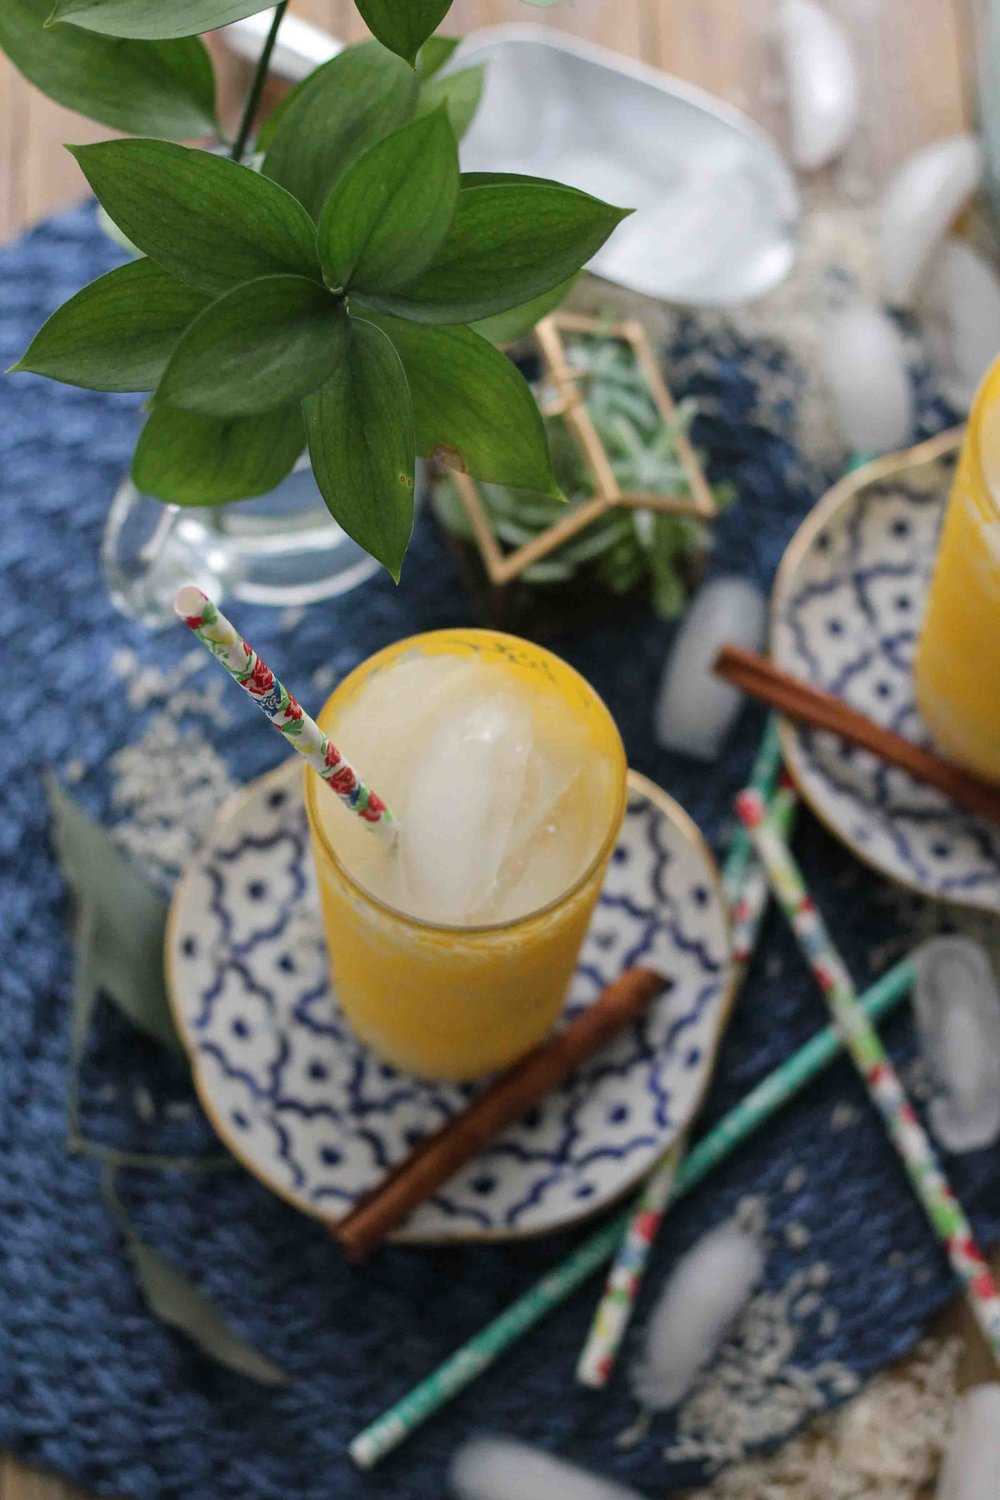 This simple 7-ingredient coconut milk horchata is the perfect way to embrace the warm weather.